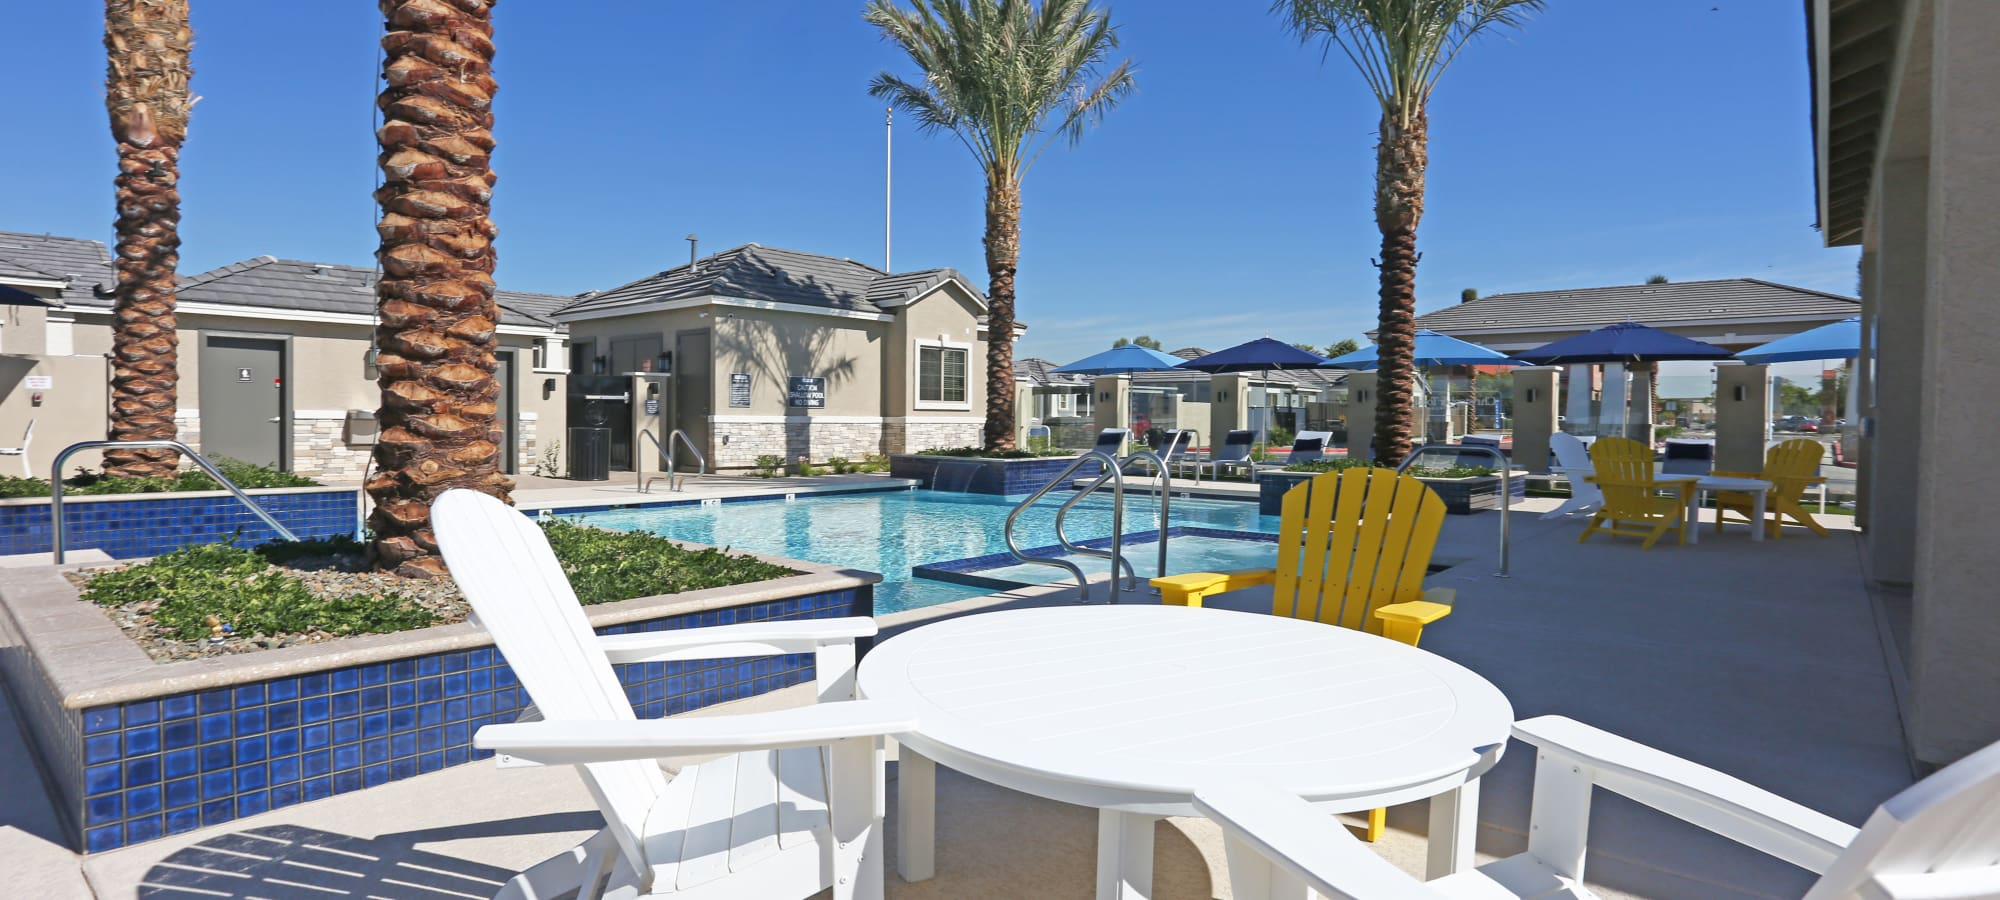 Comfortable seating near the pool at Christopher Todd Communities At Stadium in Glendale, Arizona